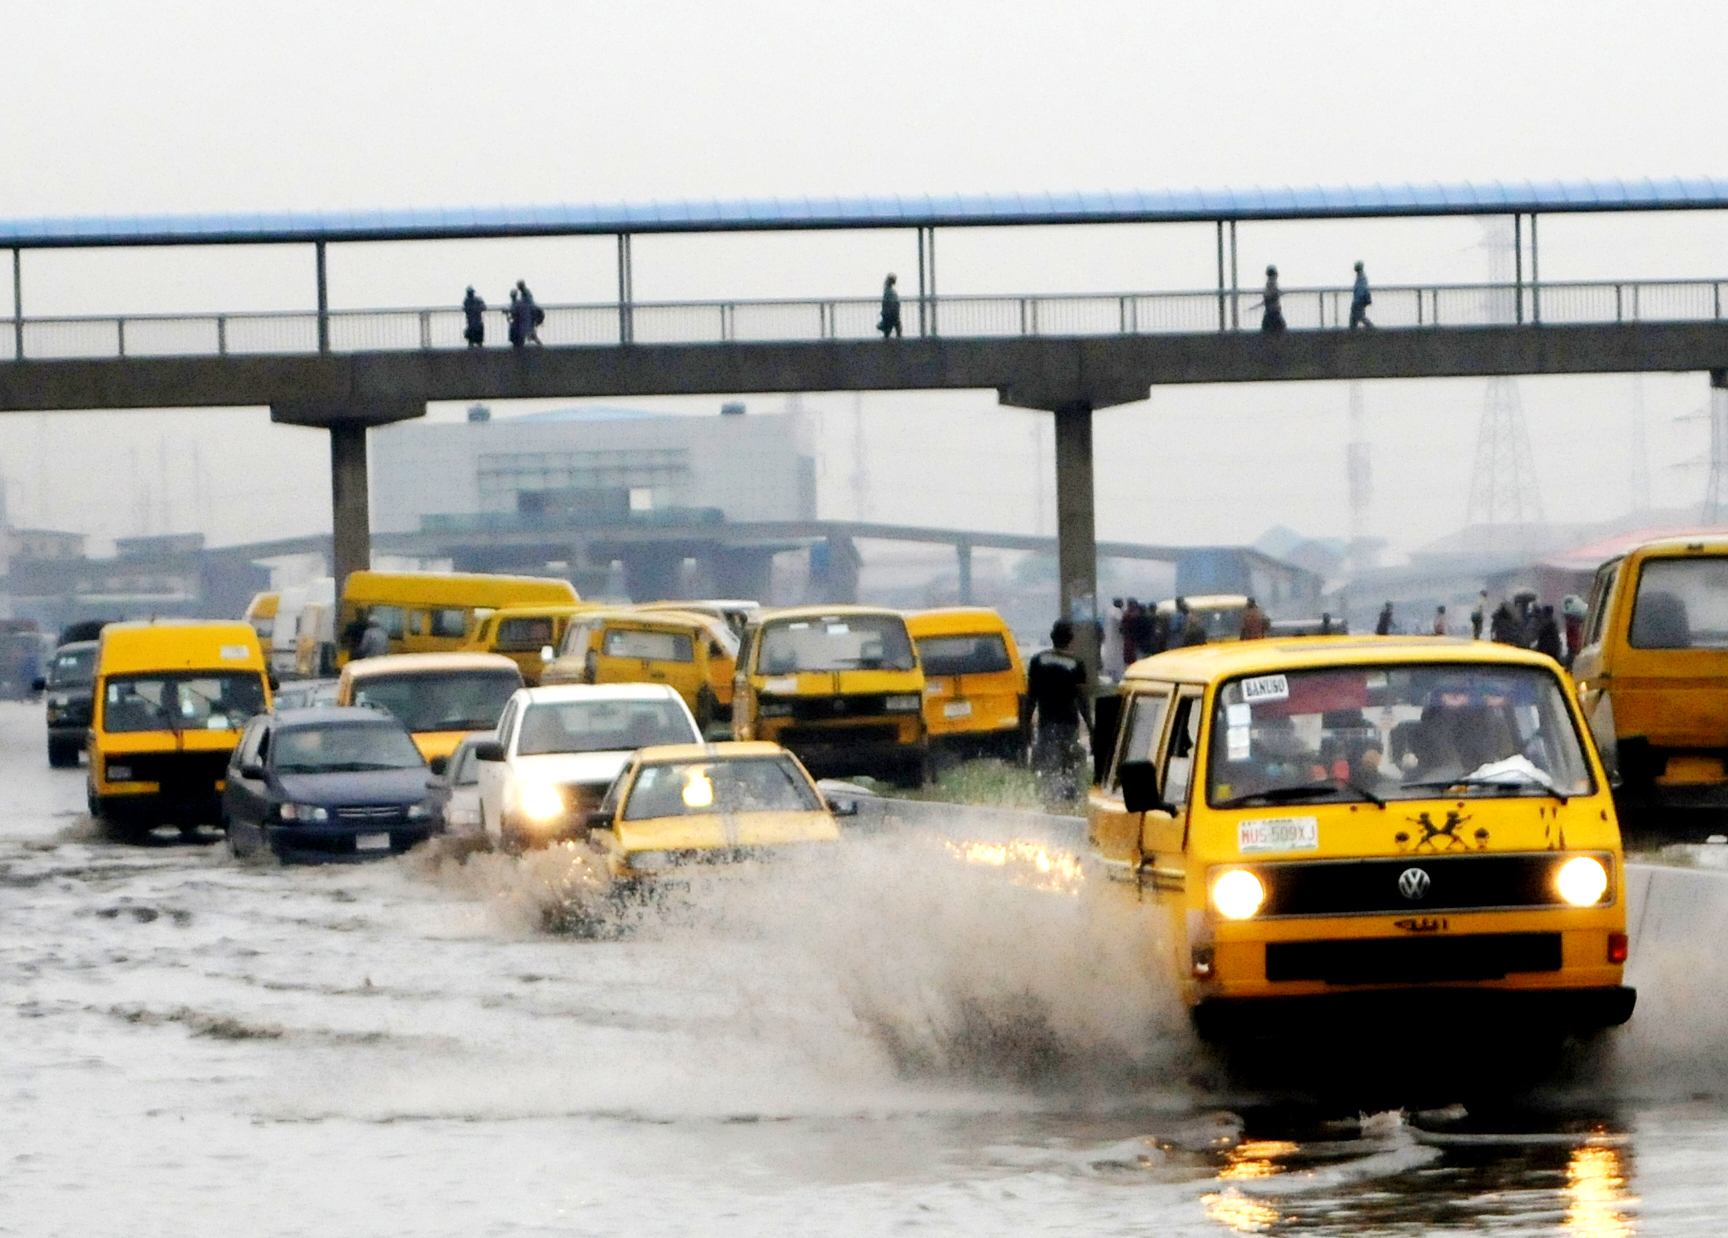 Danfo wading through water on a rainy Lagos day